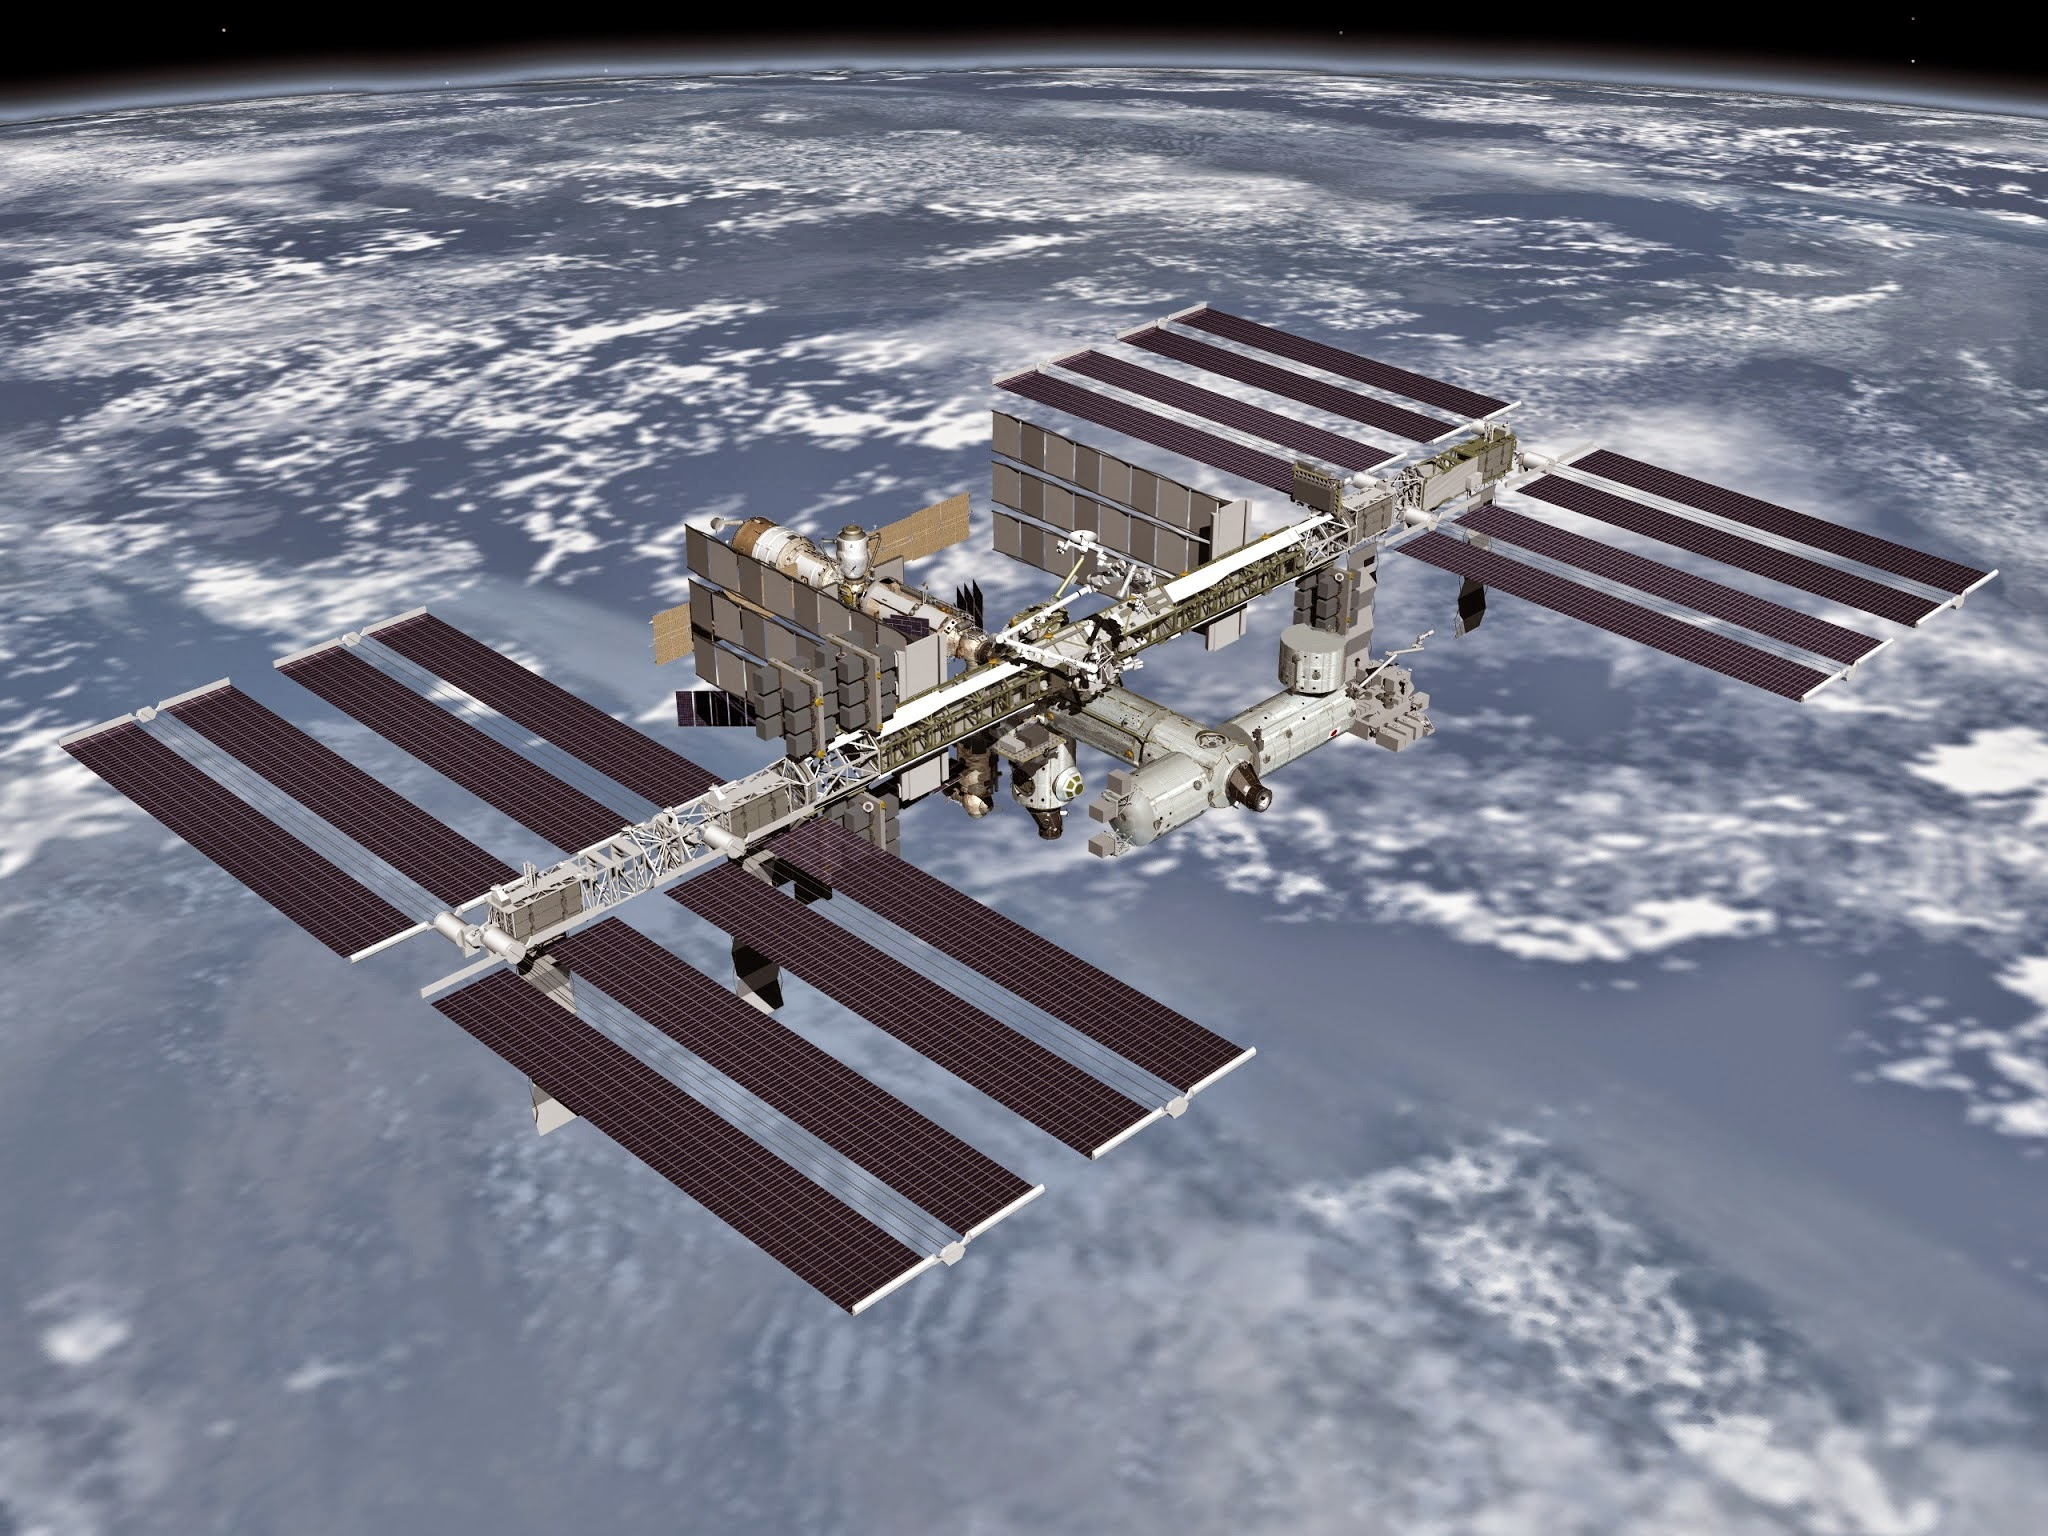 Image of the international space station ownership